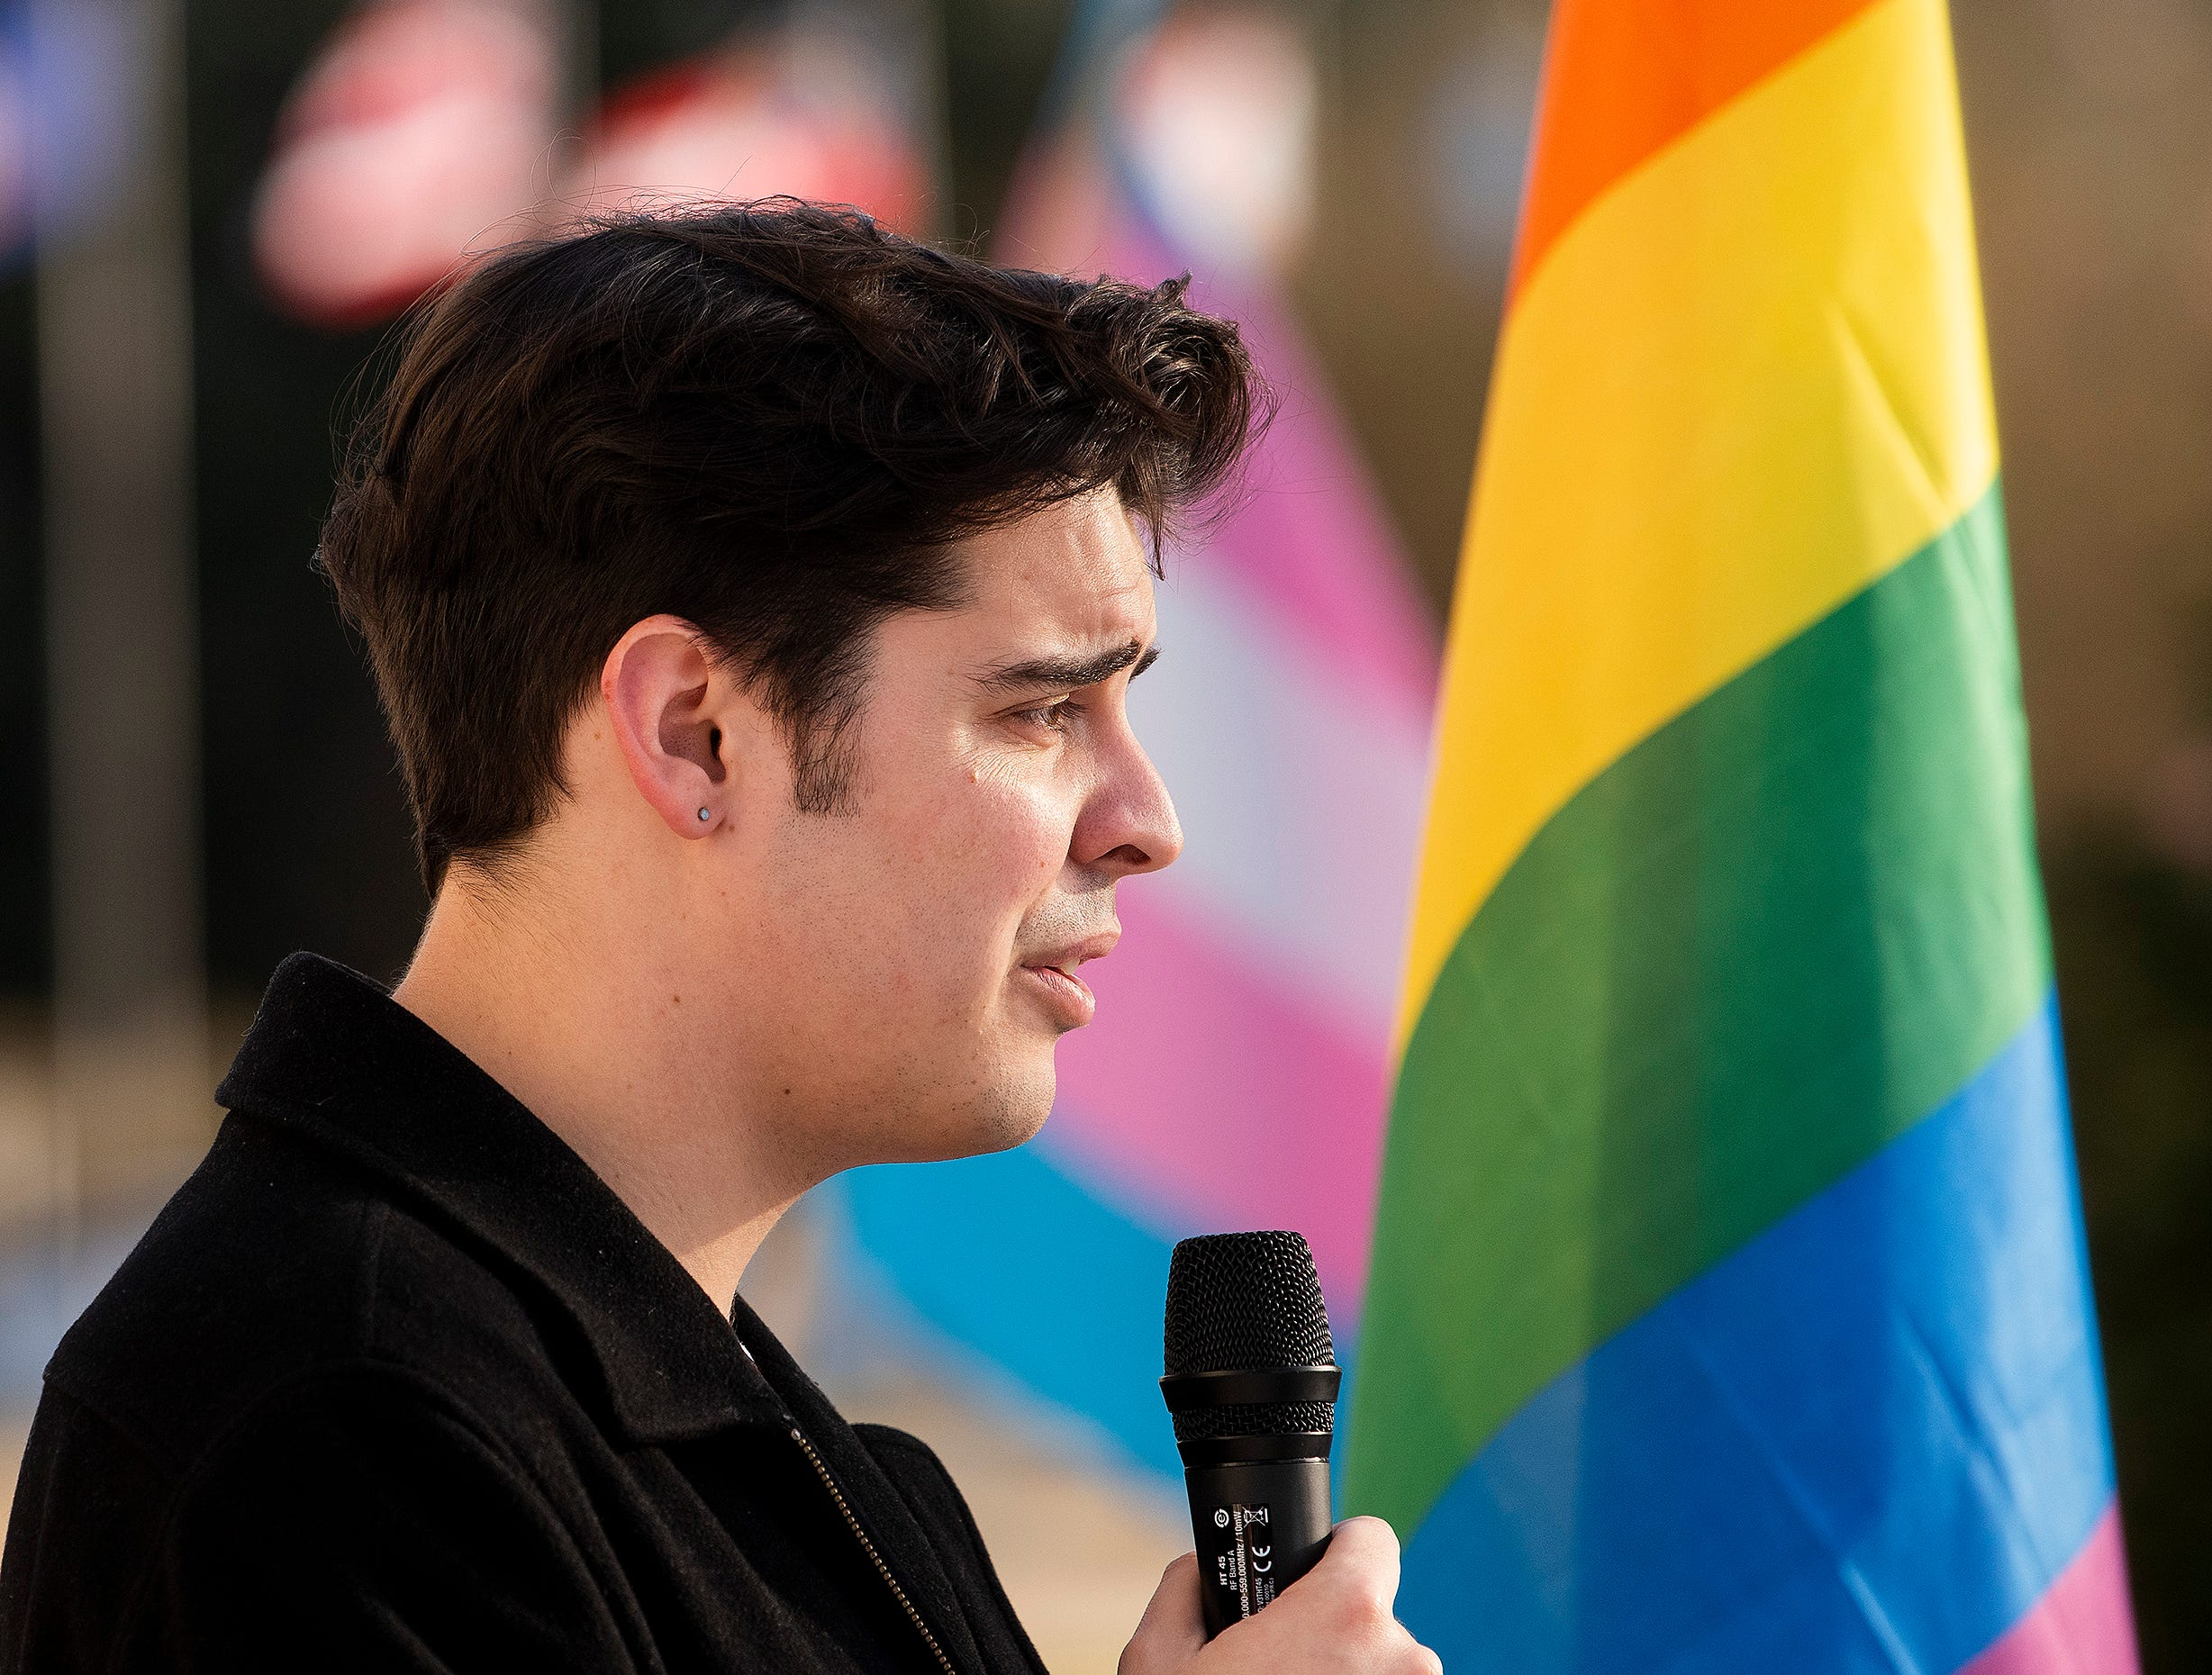 Montgomery Pride United President Jose Vasquez speaks during the Vigil for Victims of Hate and Violence held on the state capitol steps in Montgomery, Ala., on Saturday February 16, 2019.